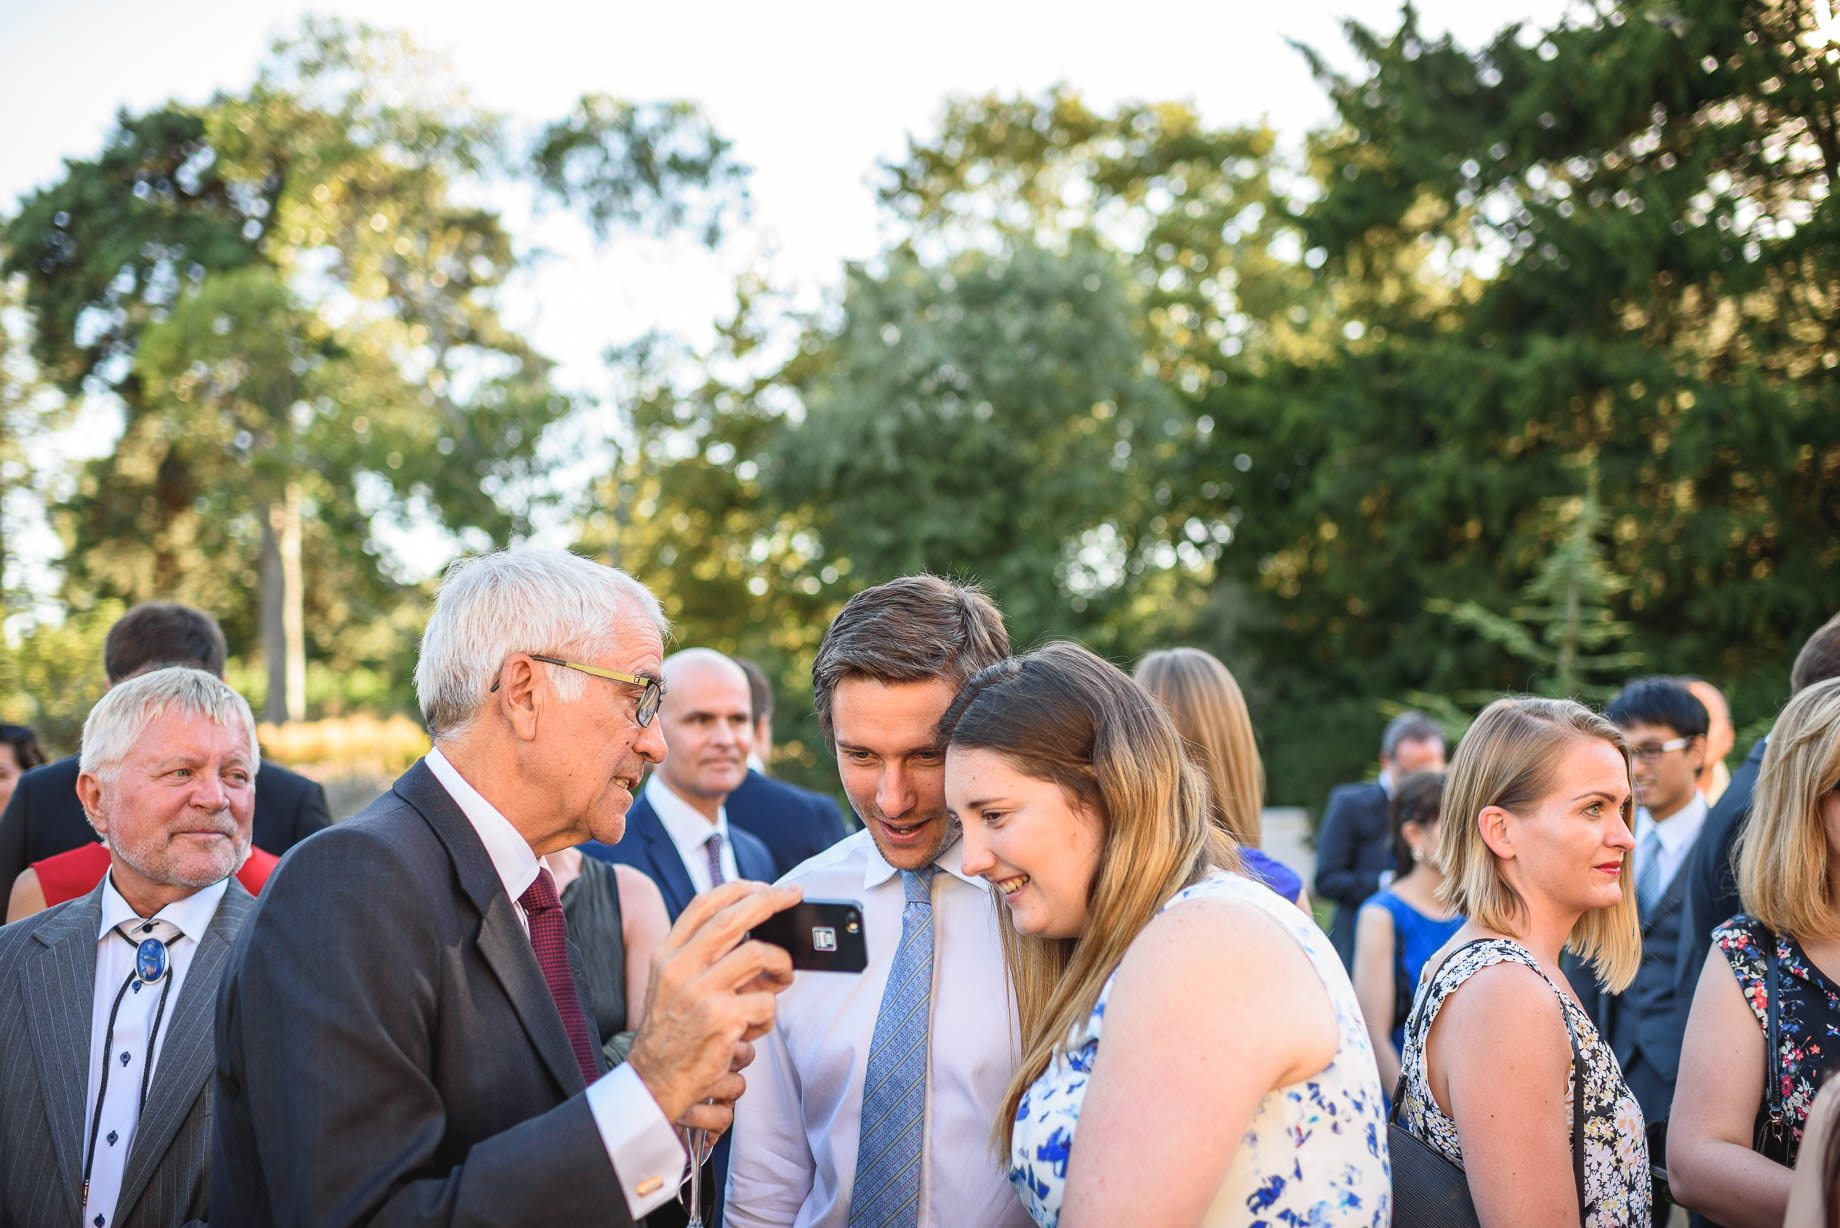 Kew Gardens wedding photography - Guy Collier Photography - Gloria and Frederik (99 of 173)